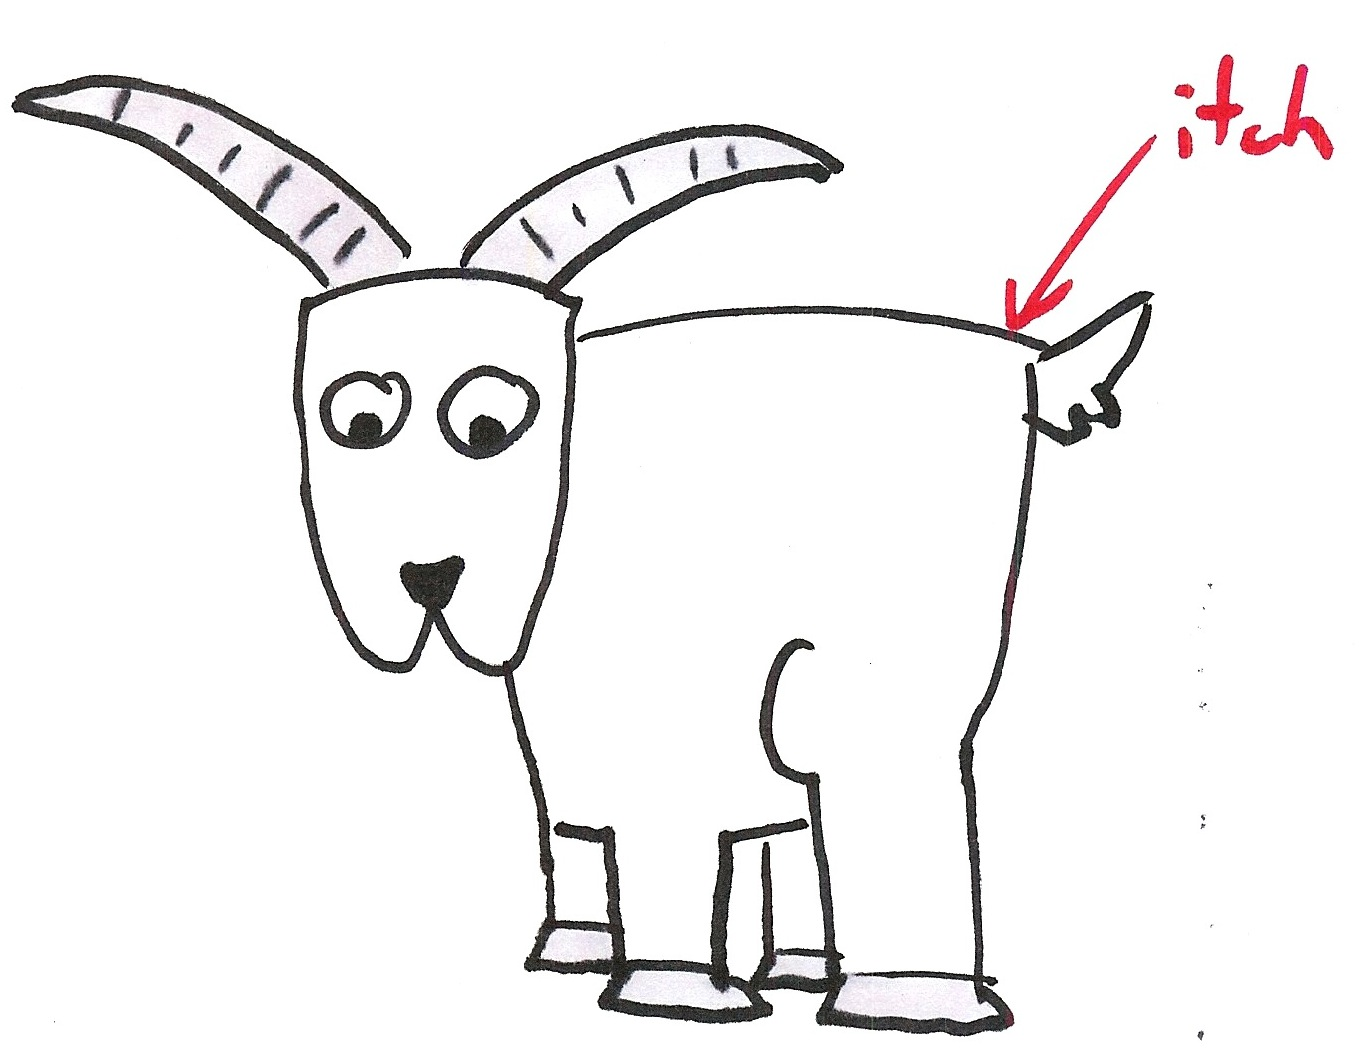 Kent Beck's Itchy Goat metaphor for Lean Startup: build measure learn